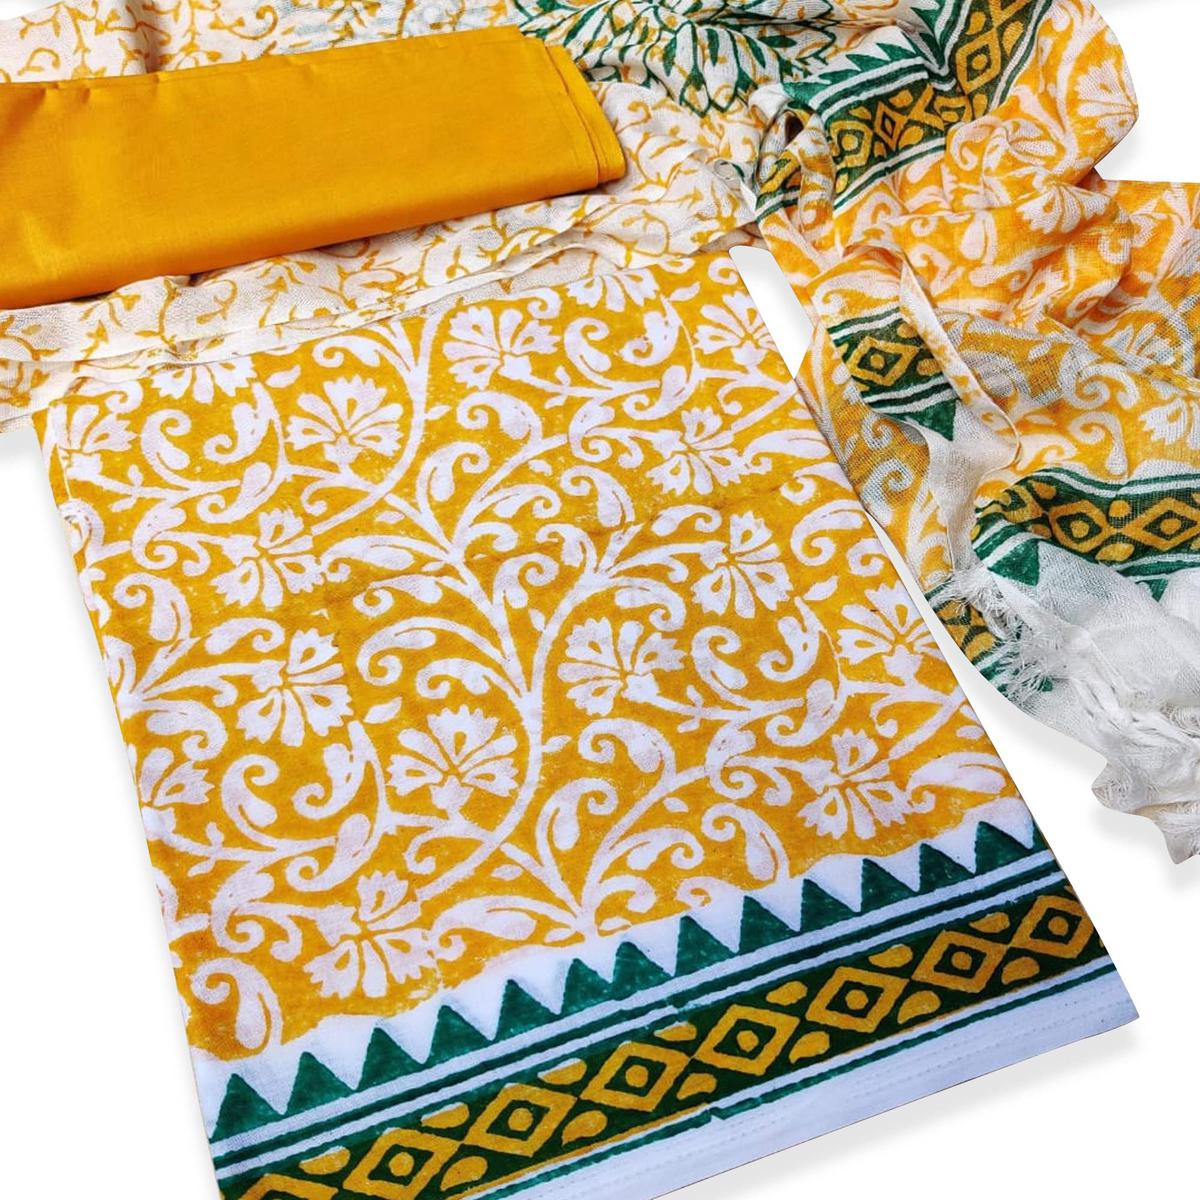 IRIS - Yellow Colored Casual Wear Pure Hand Block Printed Cotton Dress Material